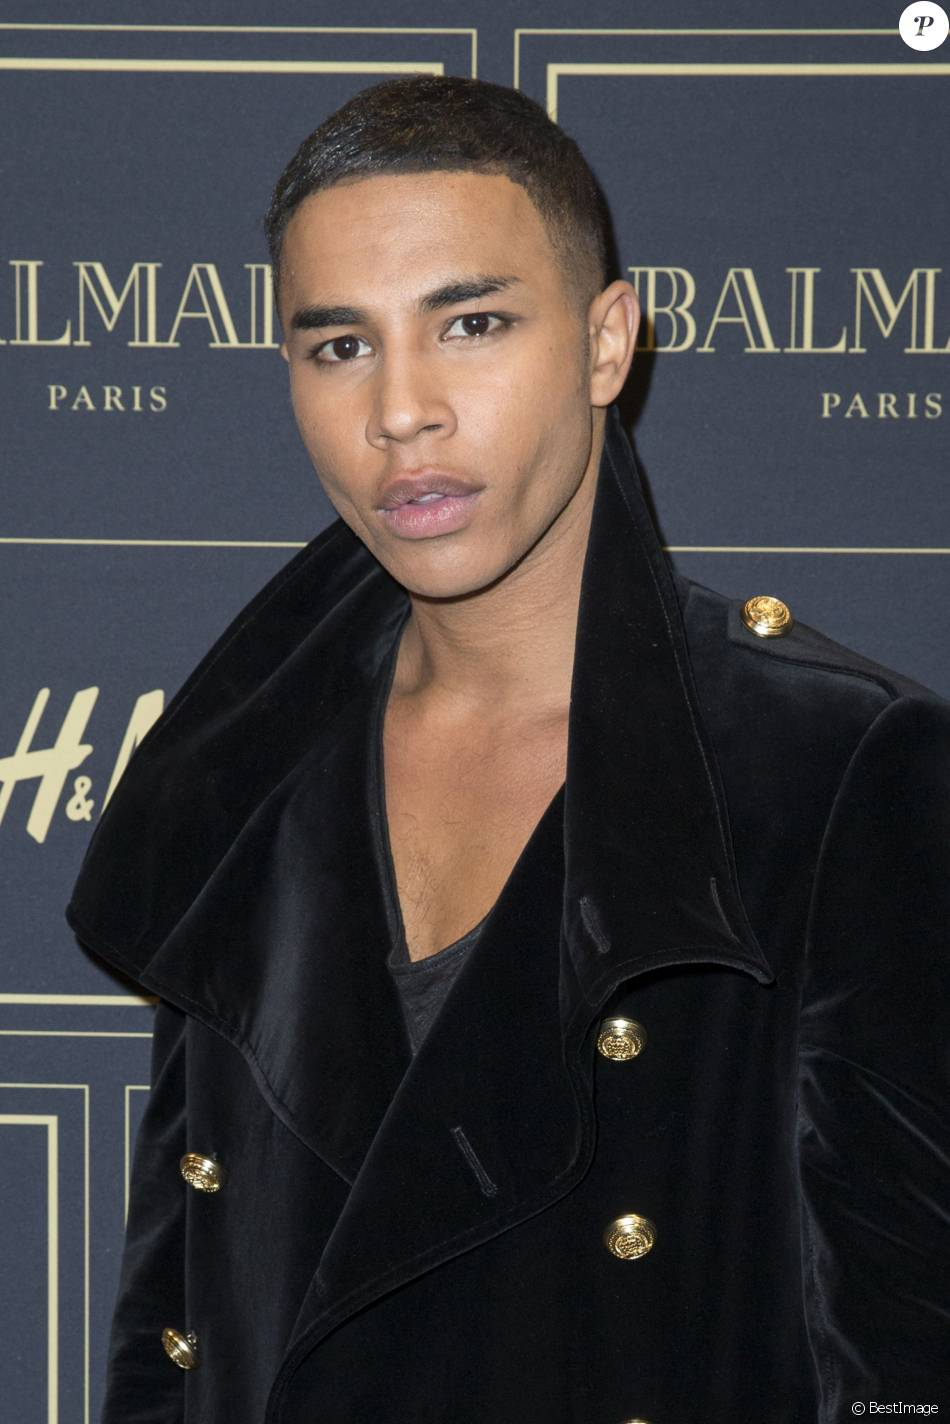 how tall is olivier rousteing